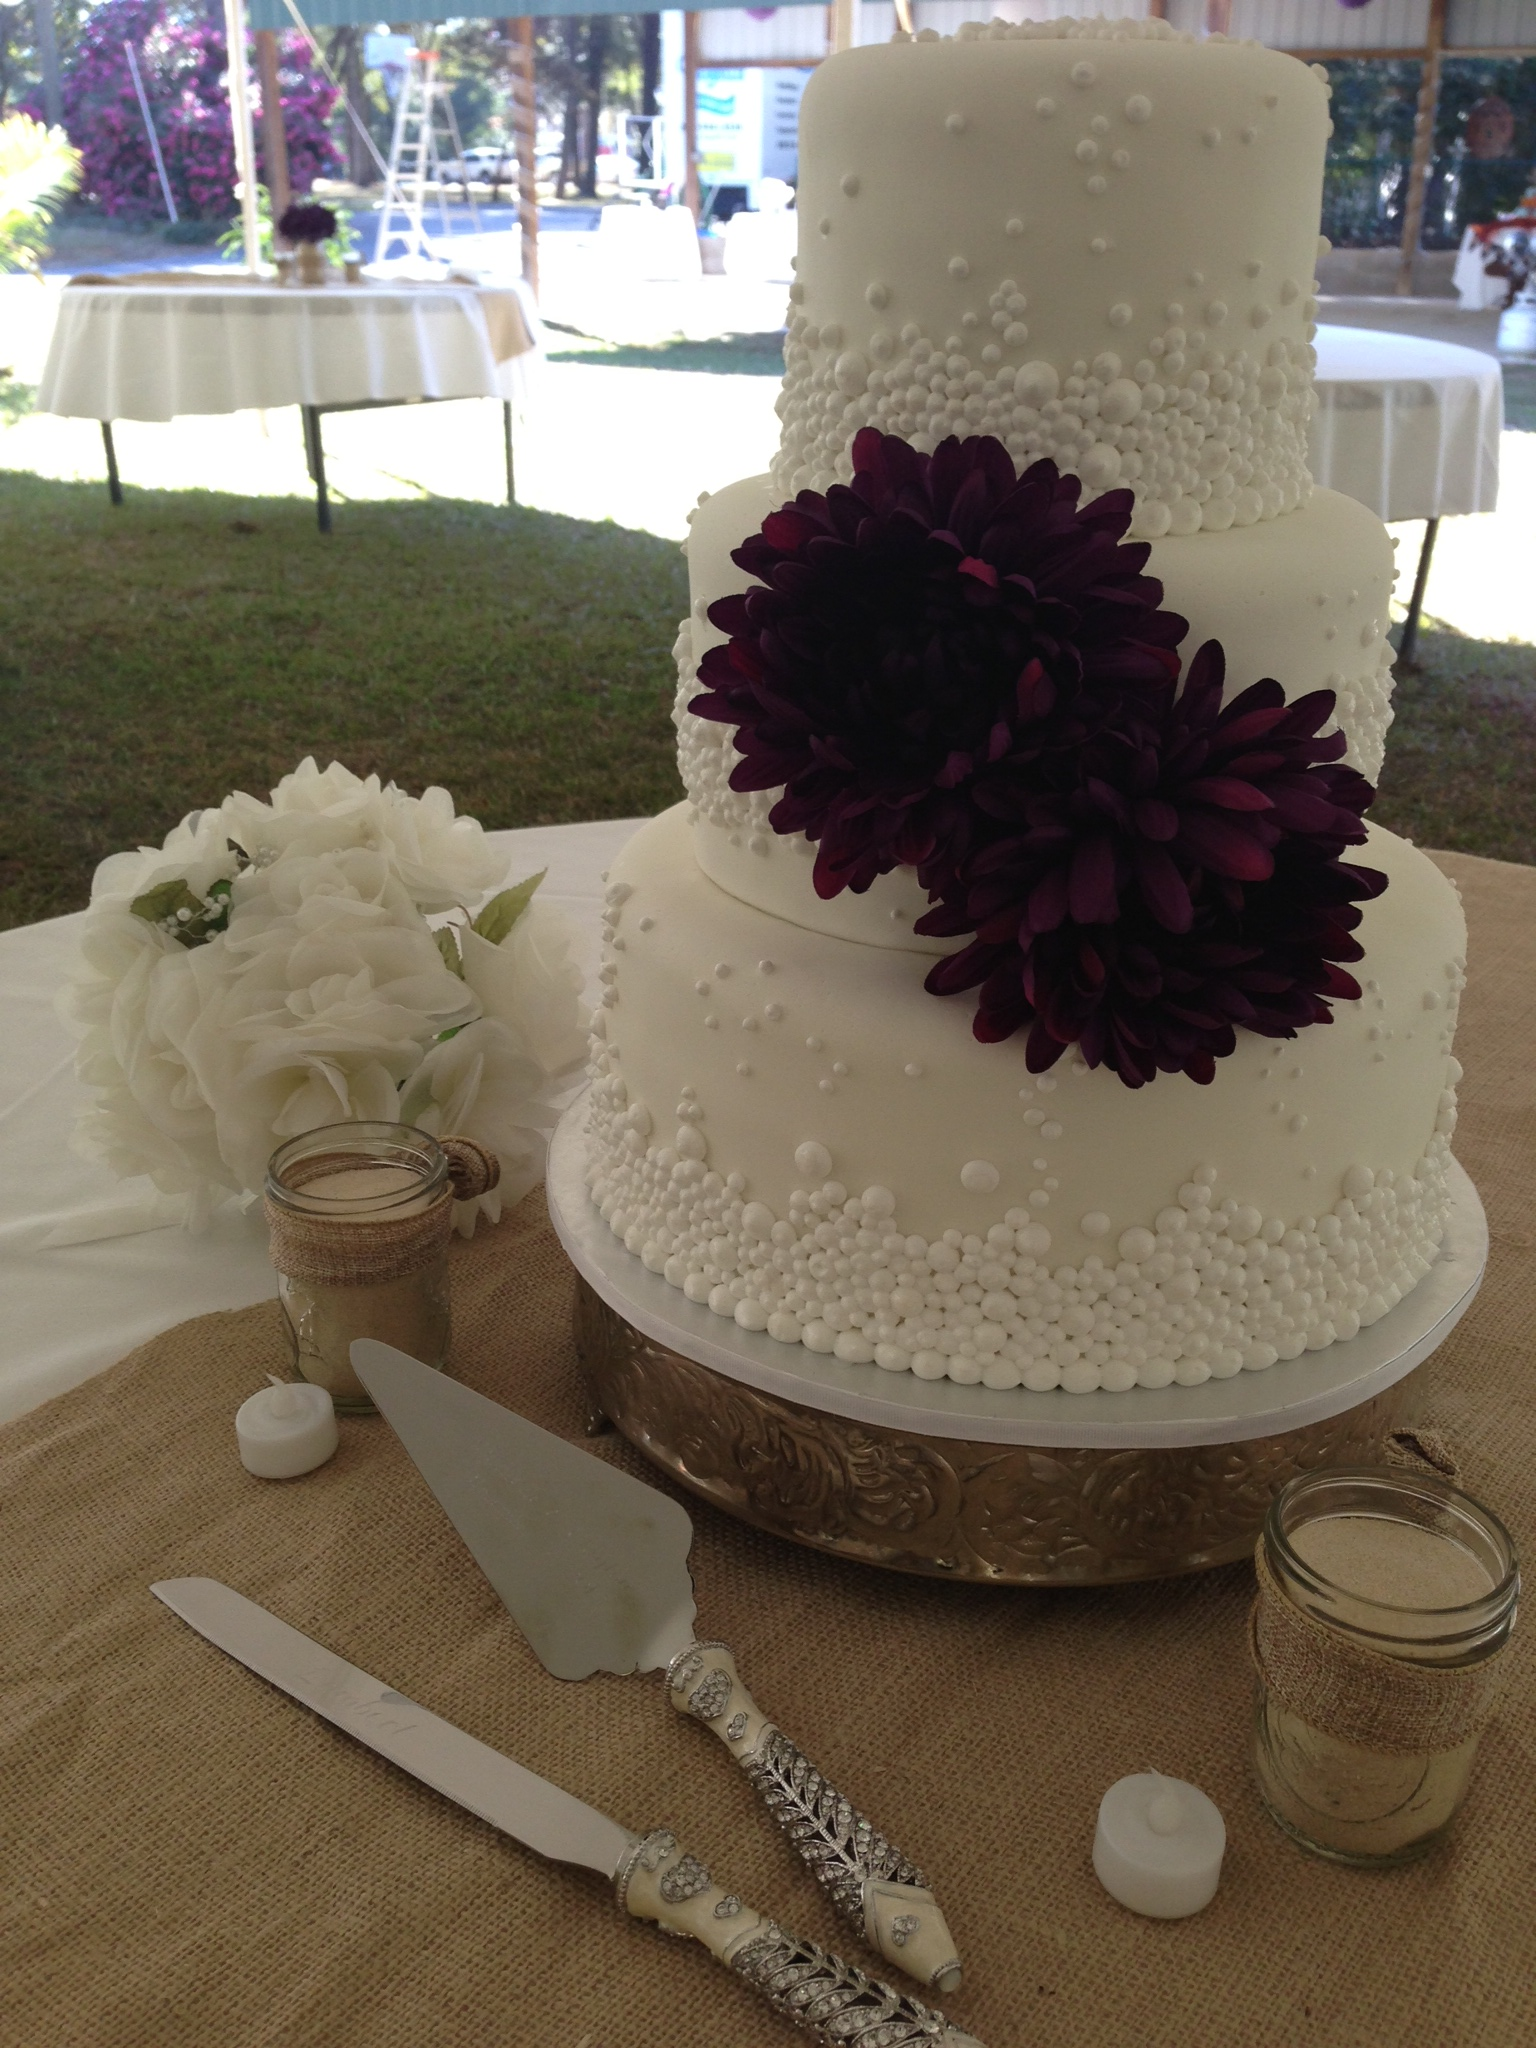 Wedding Cakes – Lolo s Cakes & Sweets